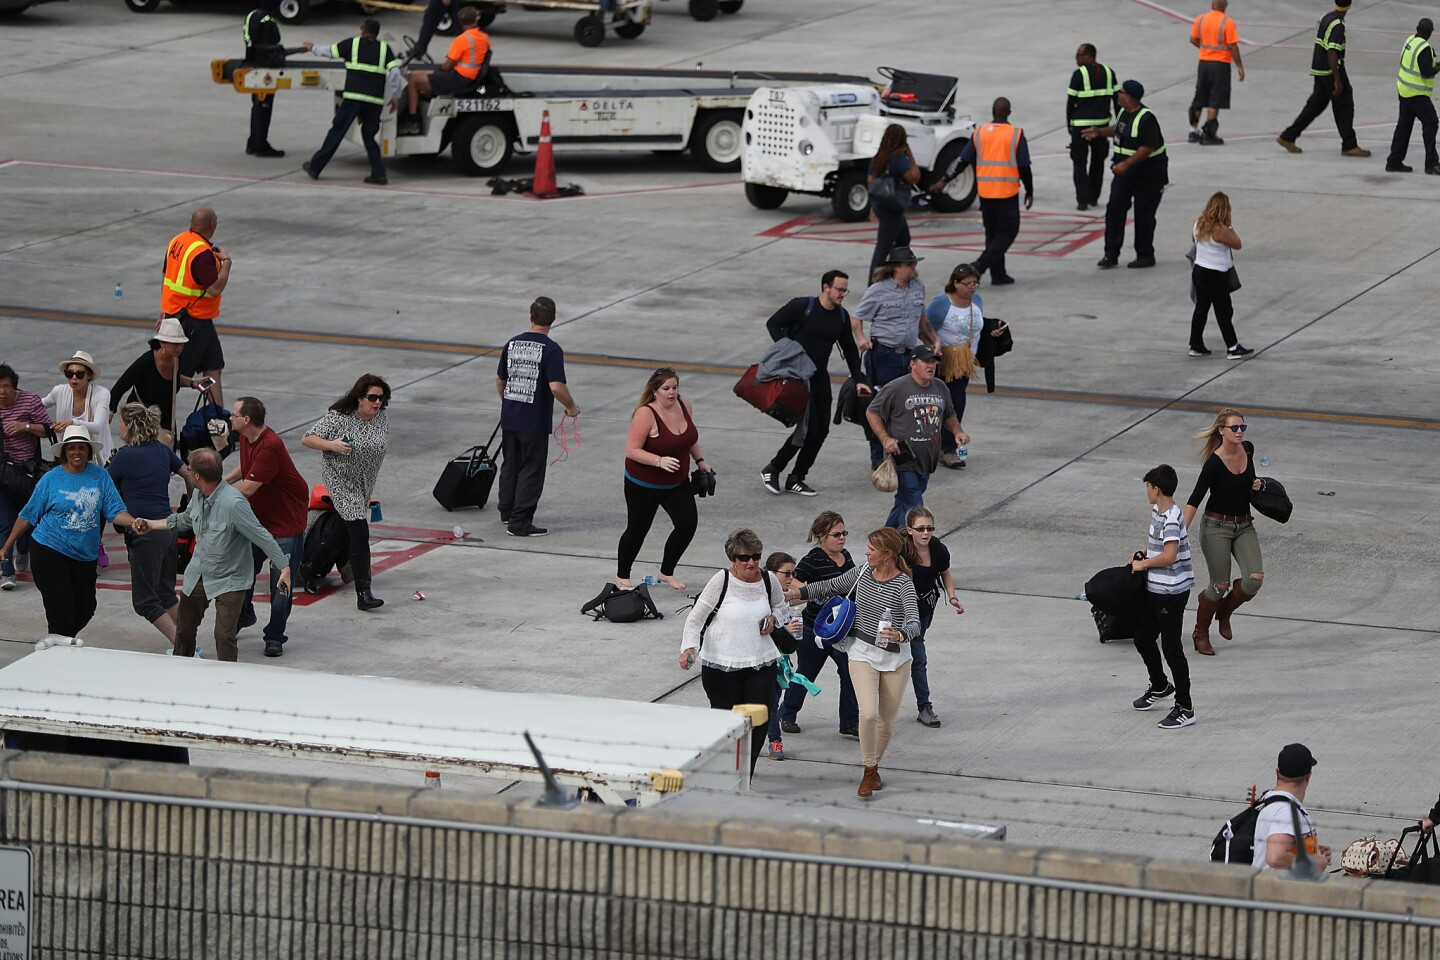 Fort Lauderdale airport shooting